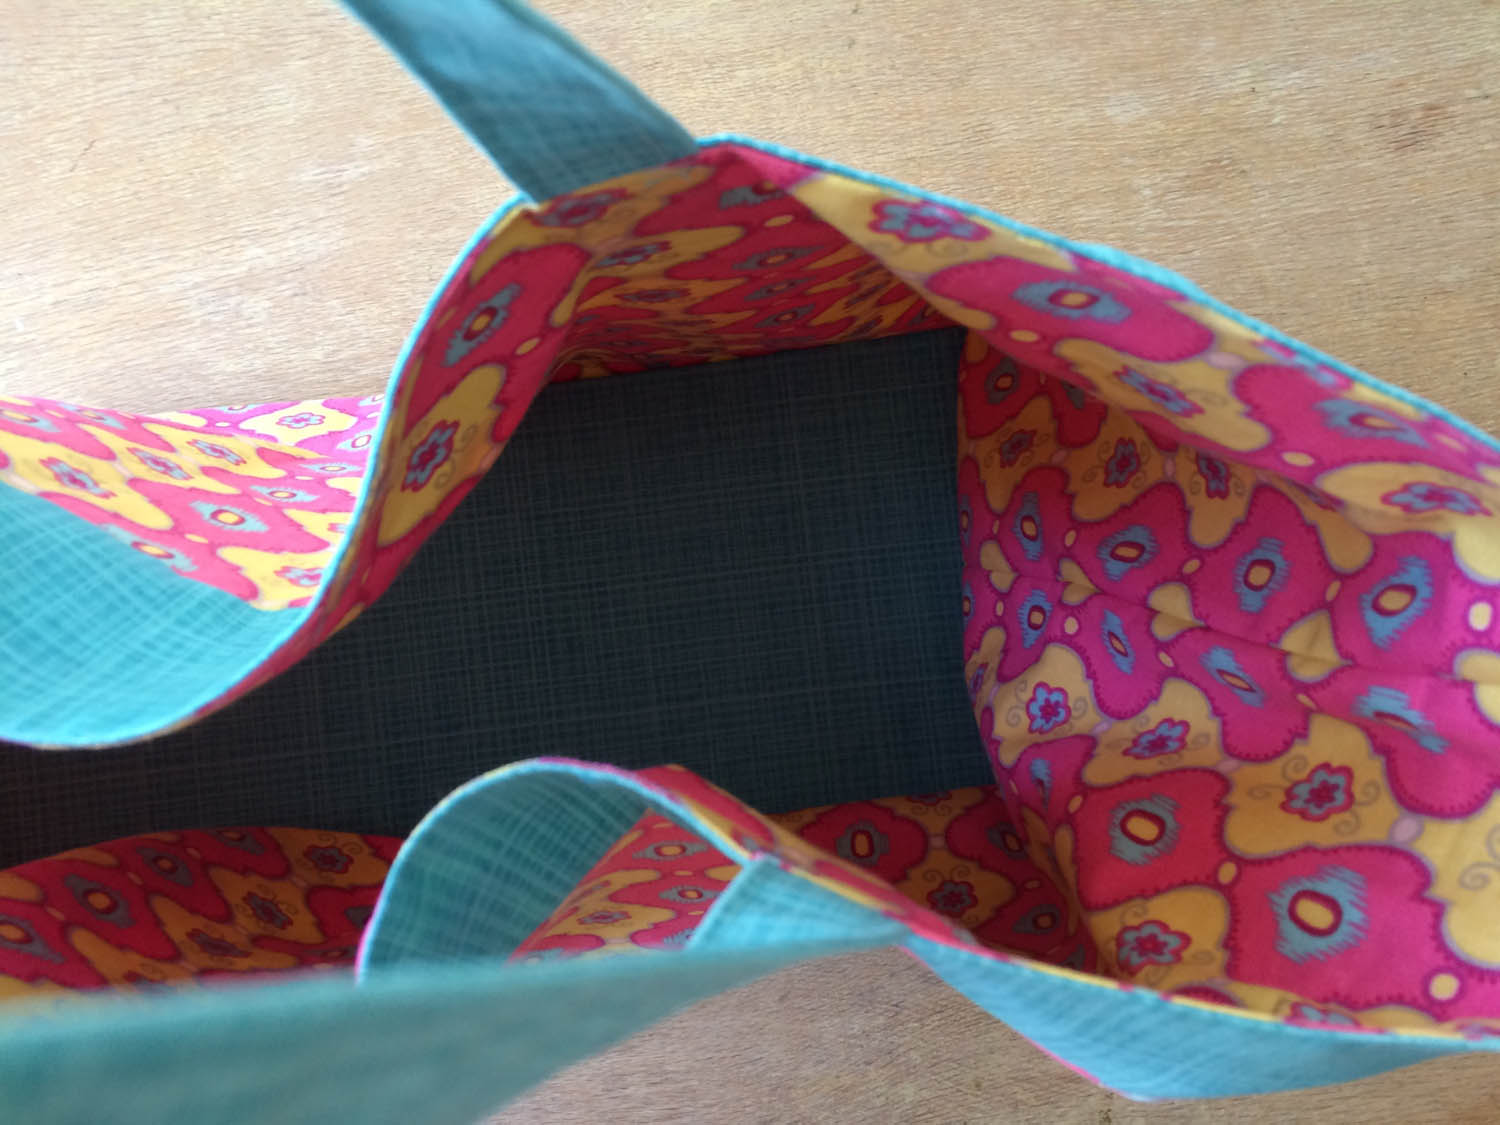 lined cardboard base inserted into tote